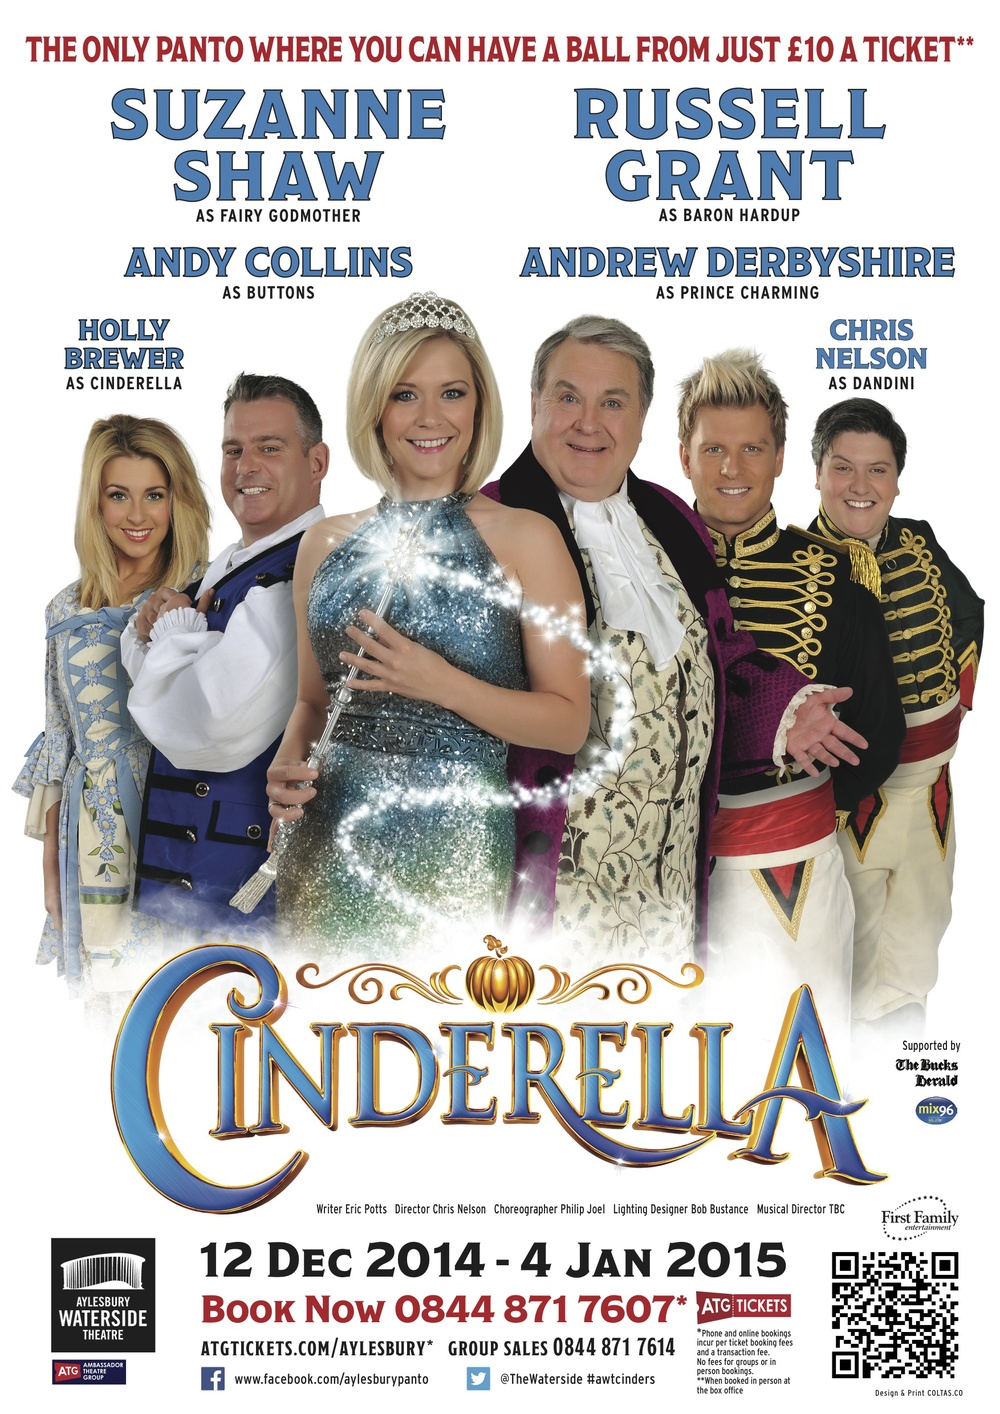 December 2014/January 2015    Playing the title role of 'Cinderella'  back at Aylesbury Waterside.